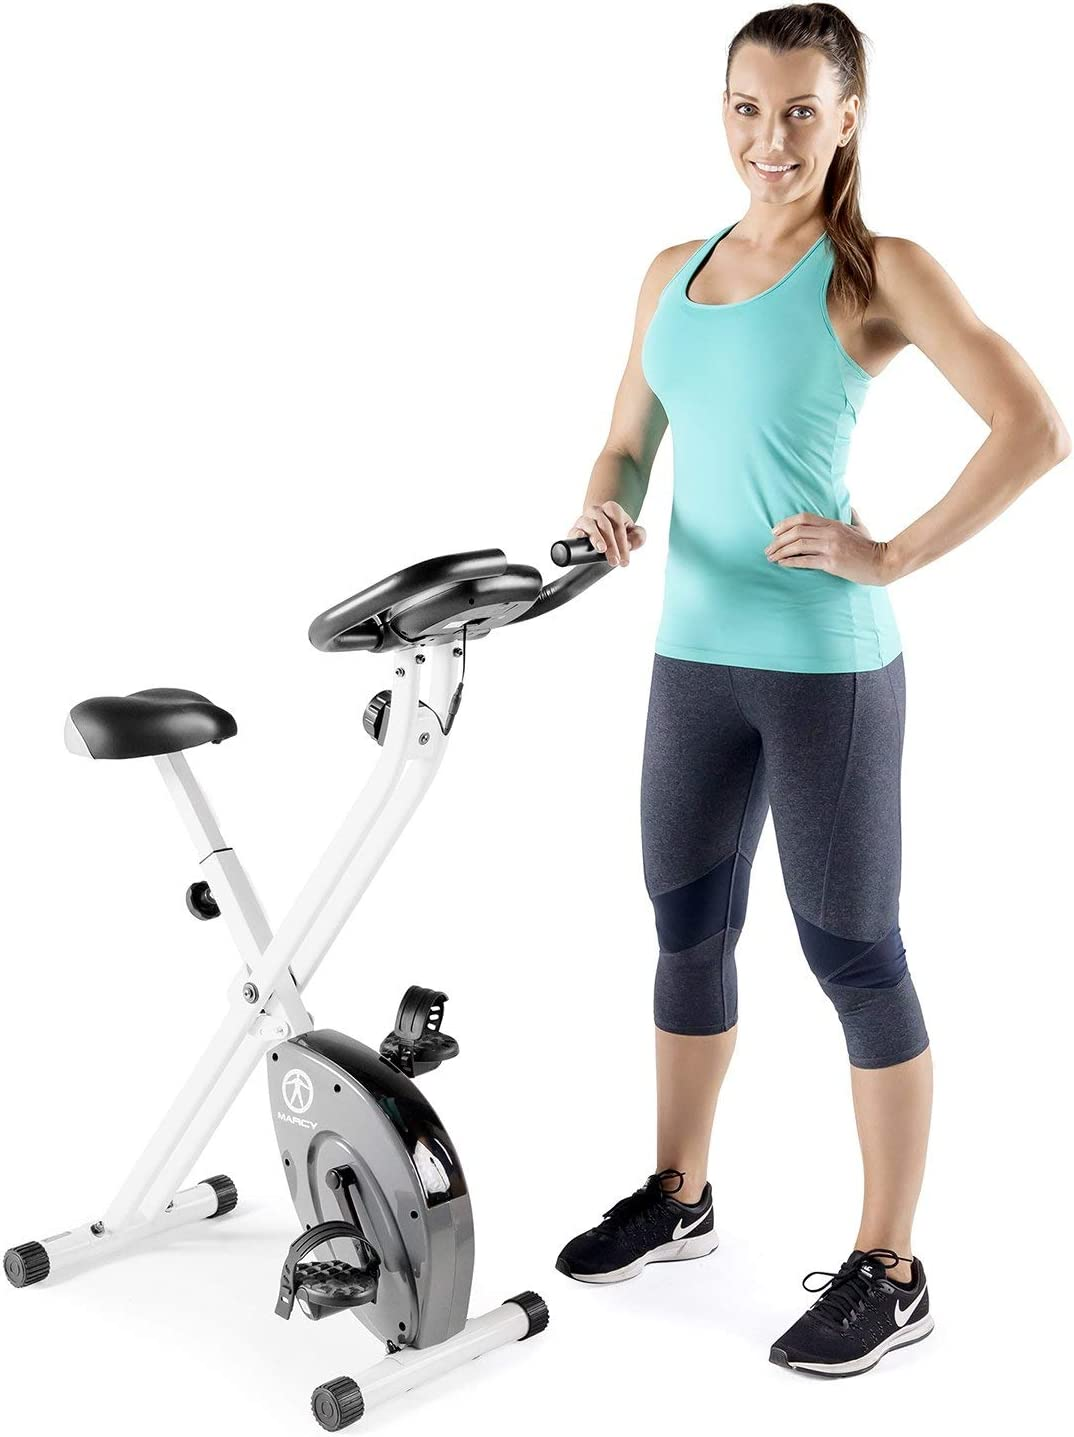 Marcy Foldable Exercise Bike Reviews In 2020 - Best 3 Model 3